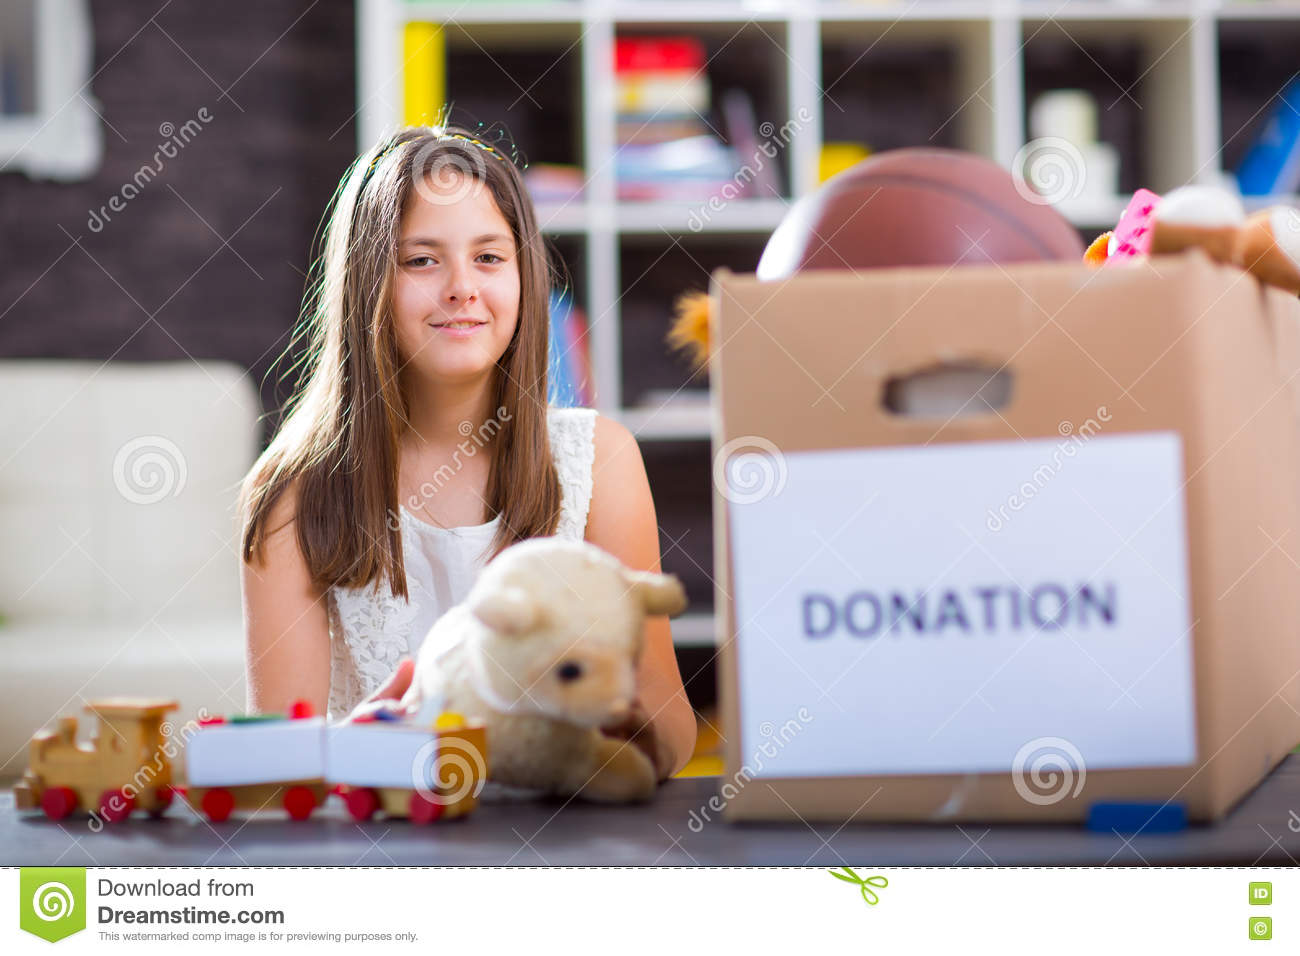 Girl Taking Donation Box Full With Stuff For Donate Stock ...